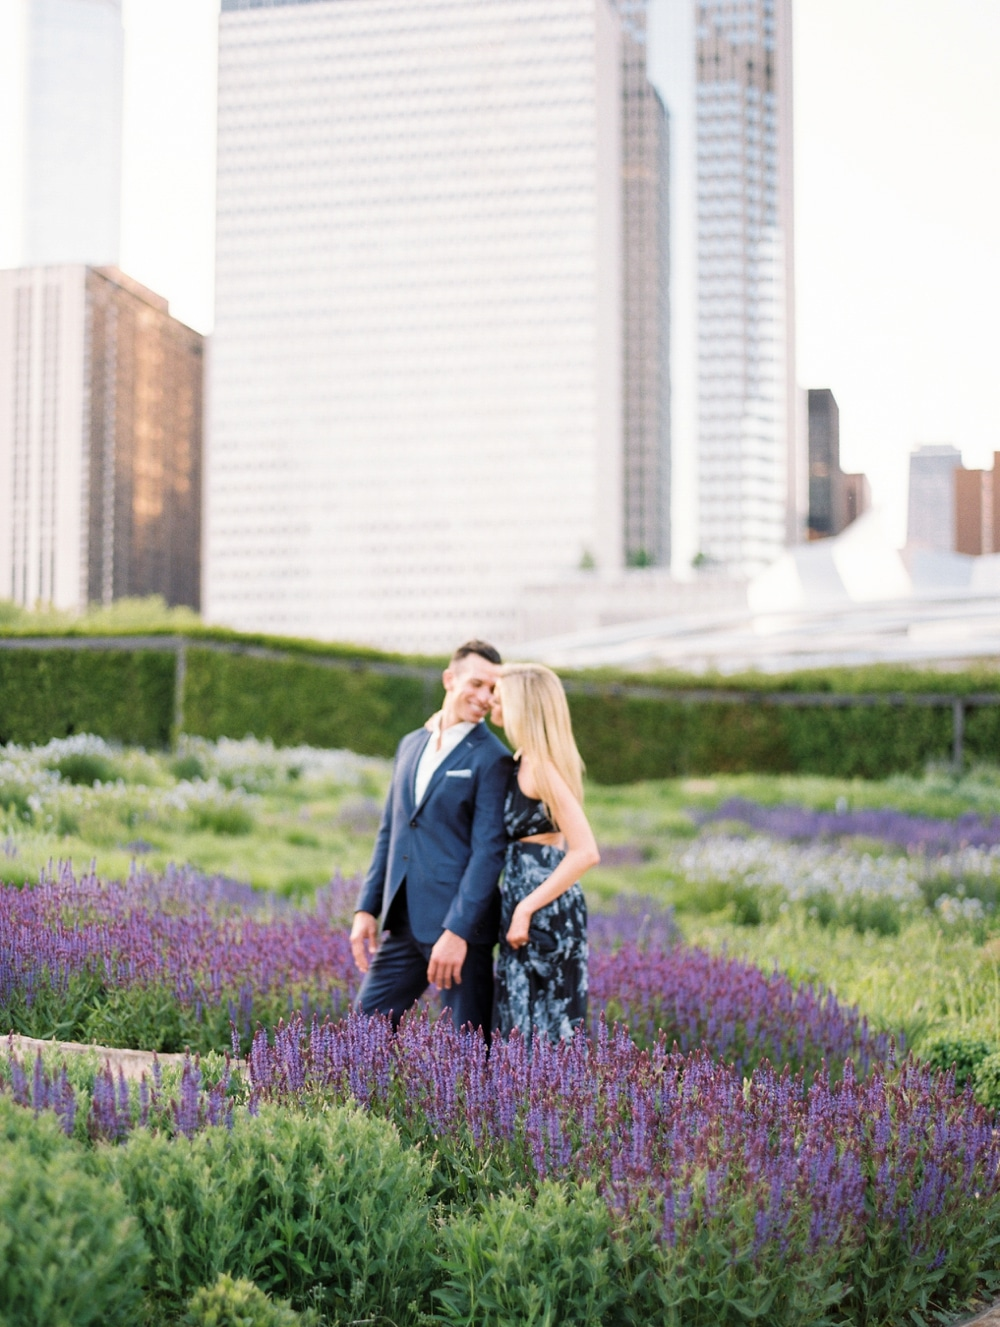 kristin-la-voie-photography-Chicago-Wedding-Photographer-Art-Institute-Lurie-Garden-Millennium-Park-21